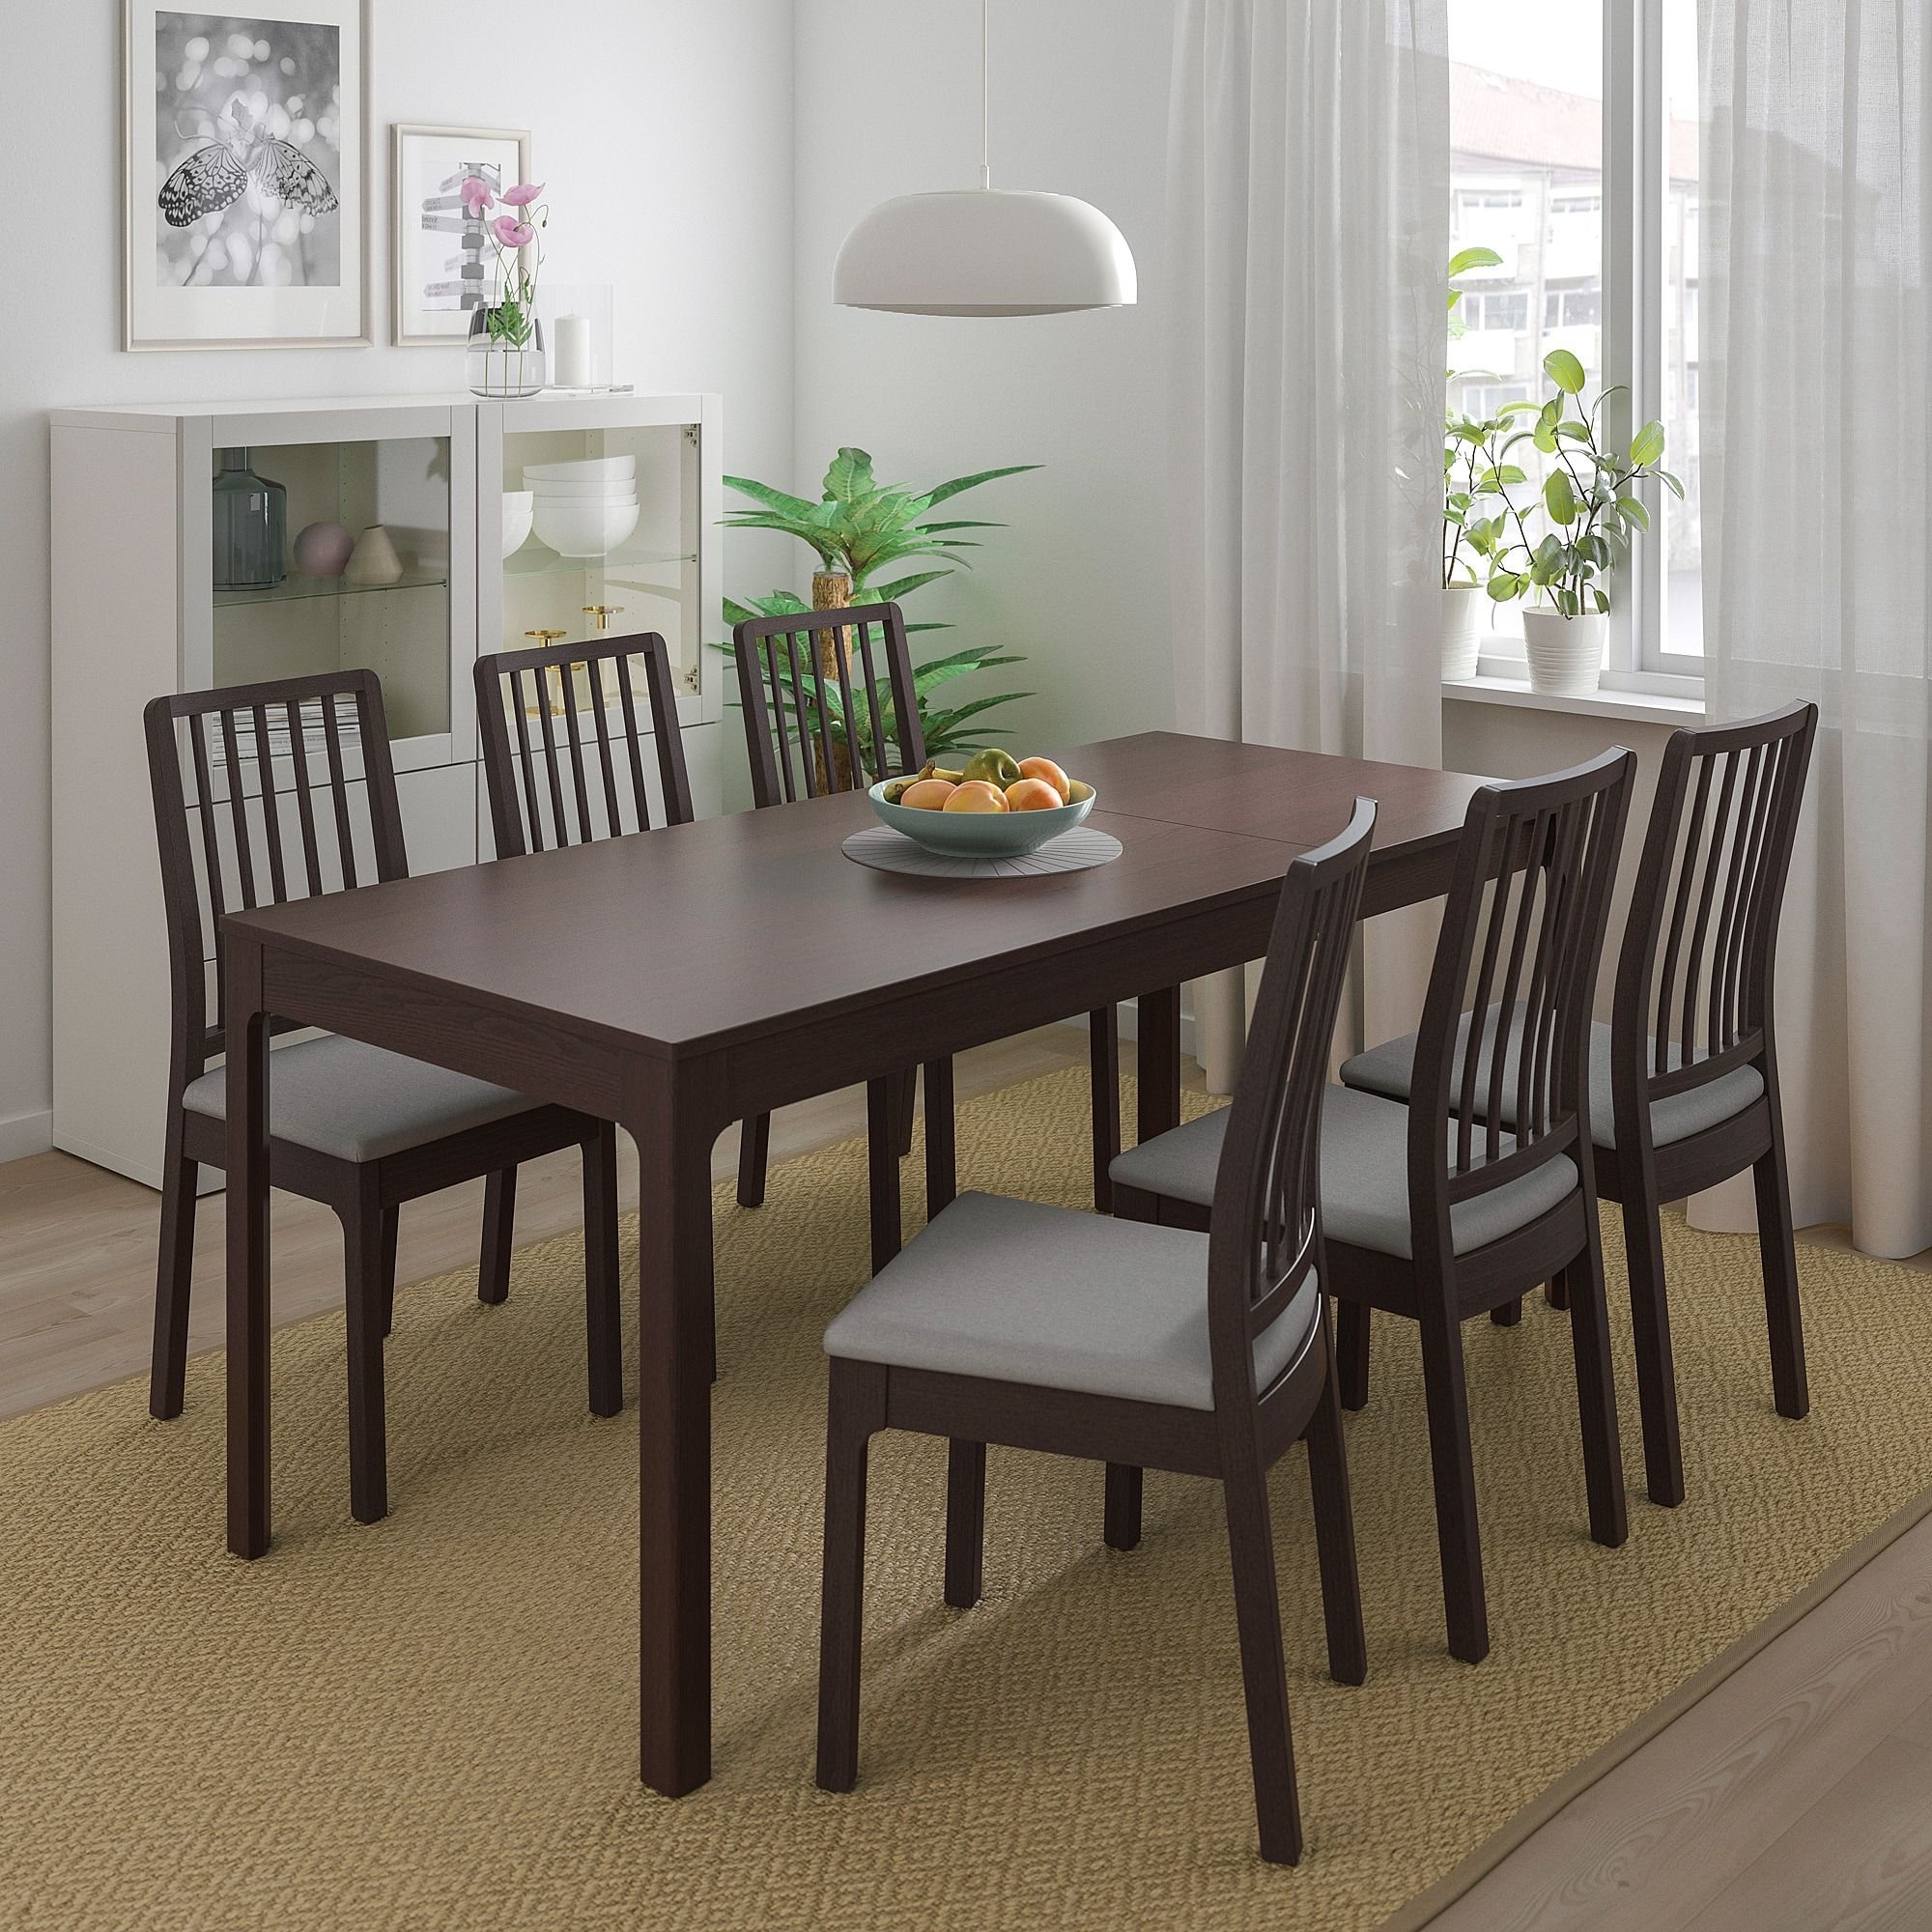 Popular Liles 5 Piece Breakfast Nook Dining Sets Pertaining To Ikea – Ekedalen / Table And 4 Chairs Dark Brown, Orrsta Light Gray (View 17 of 20)